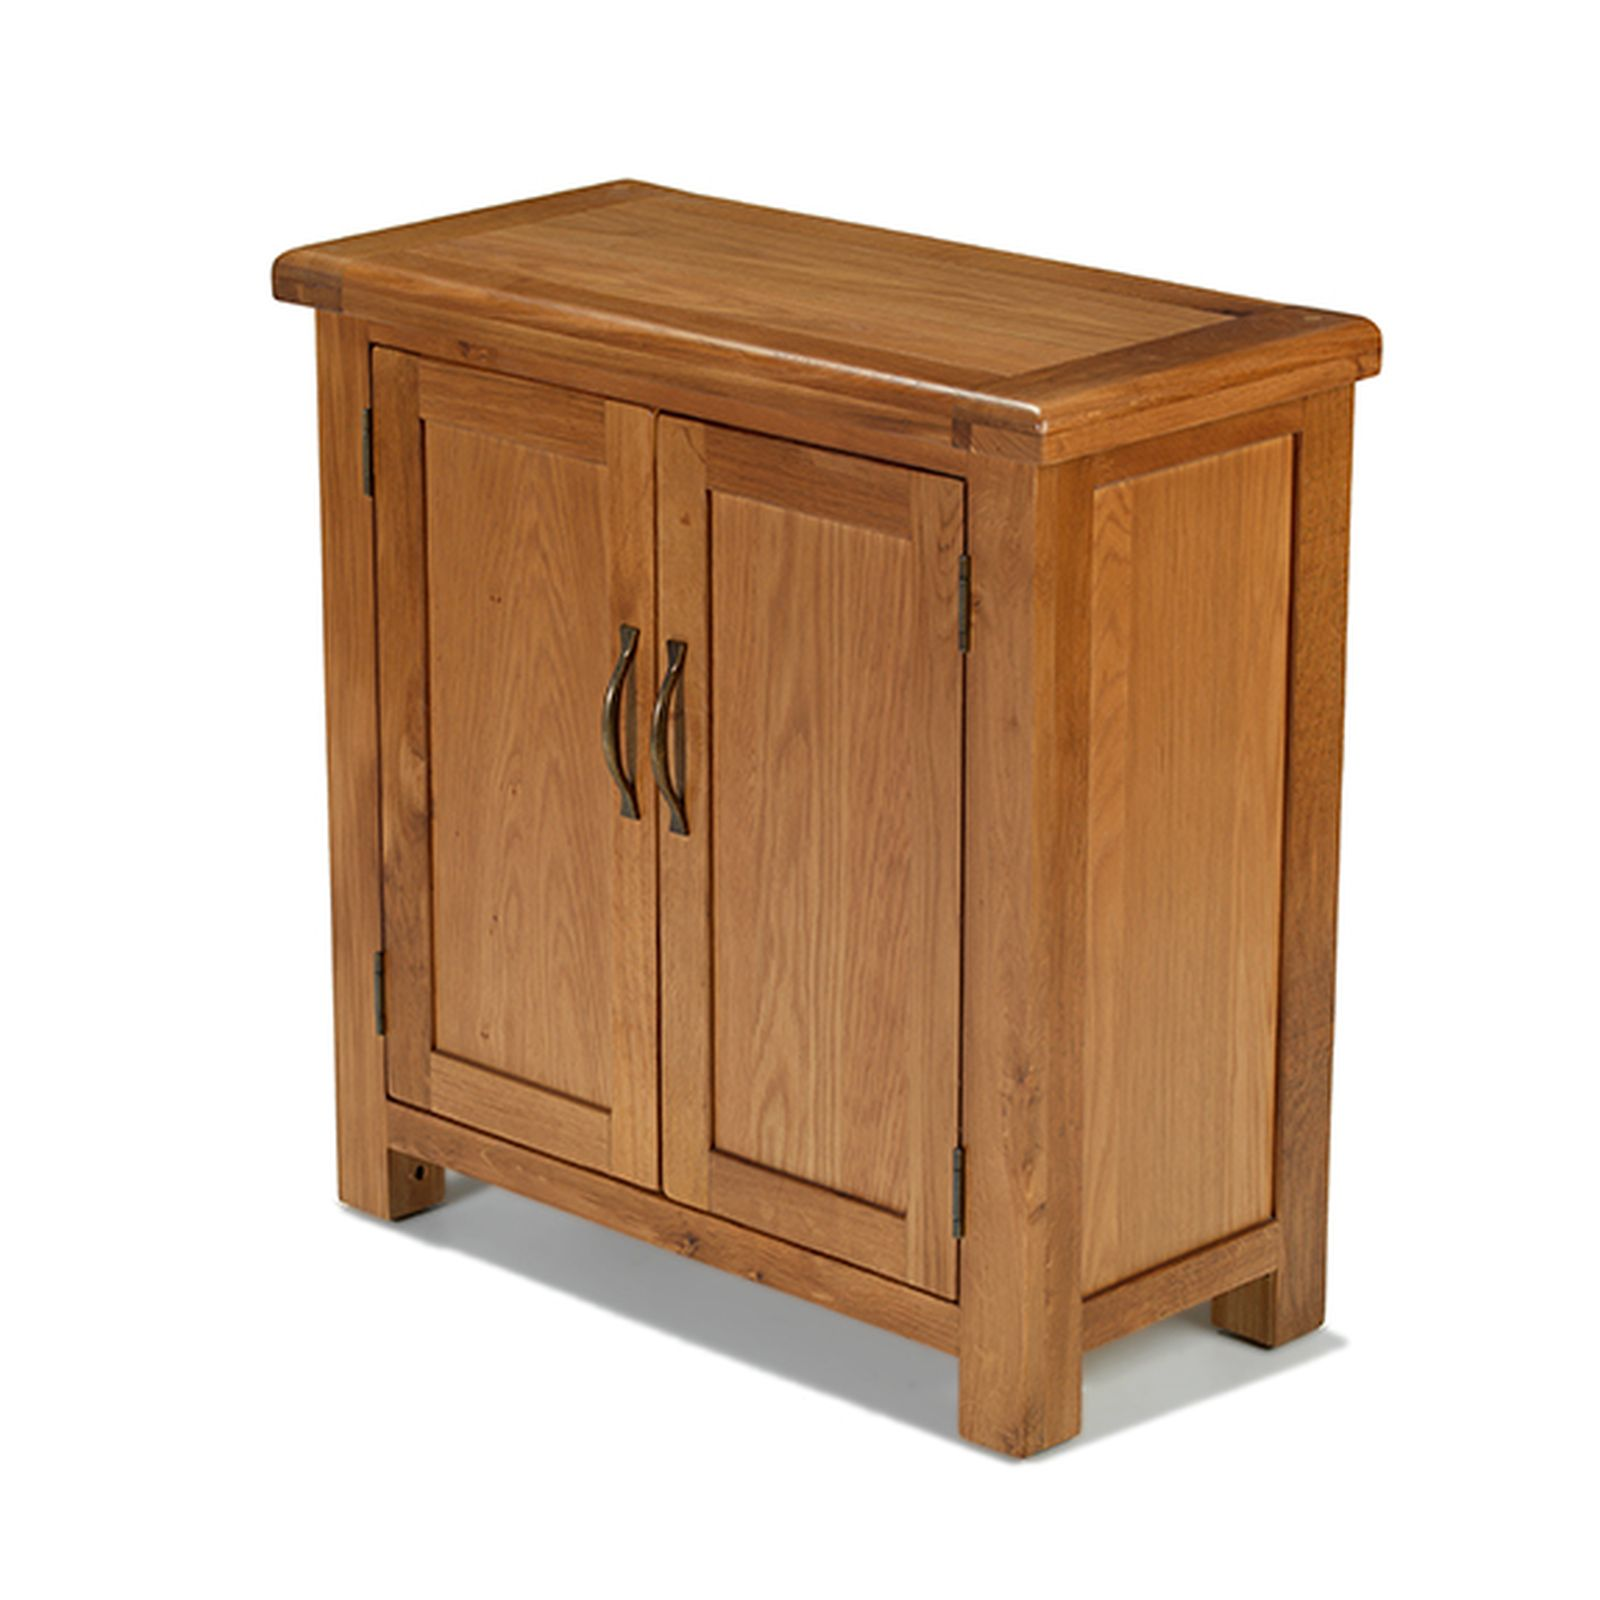 Rushden solid oak furniture small petite cabinet storage for Solid oak furniture